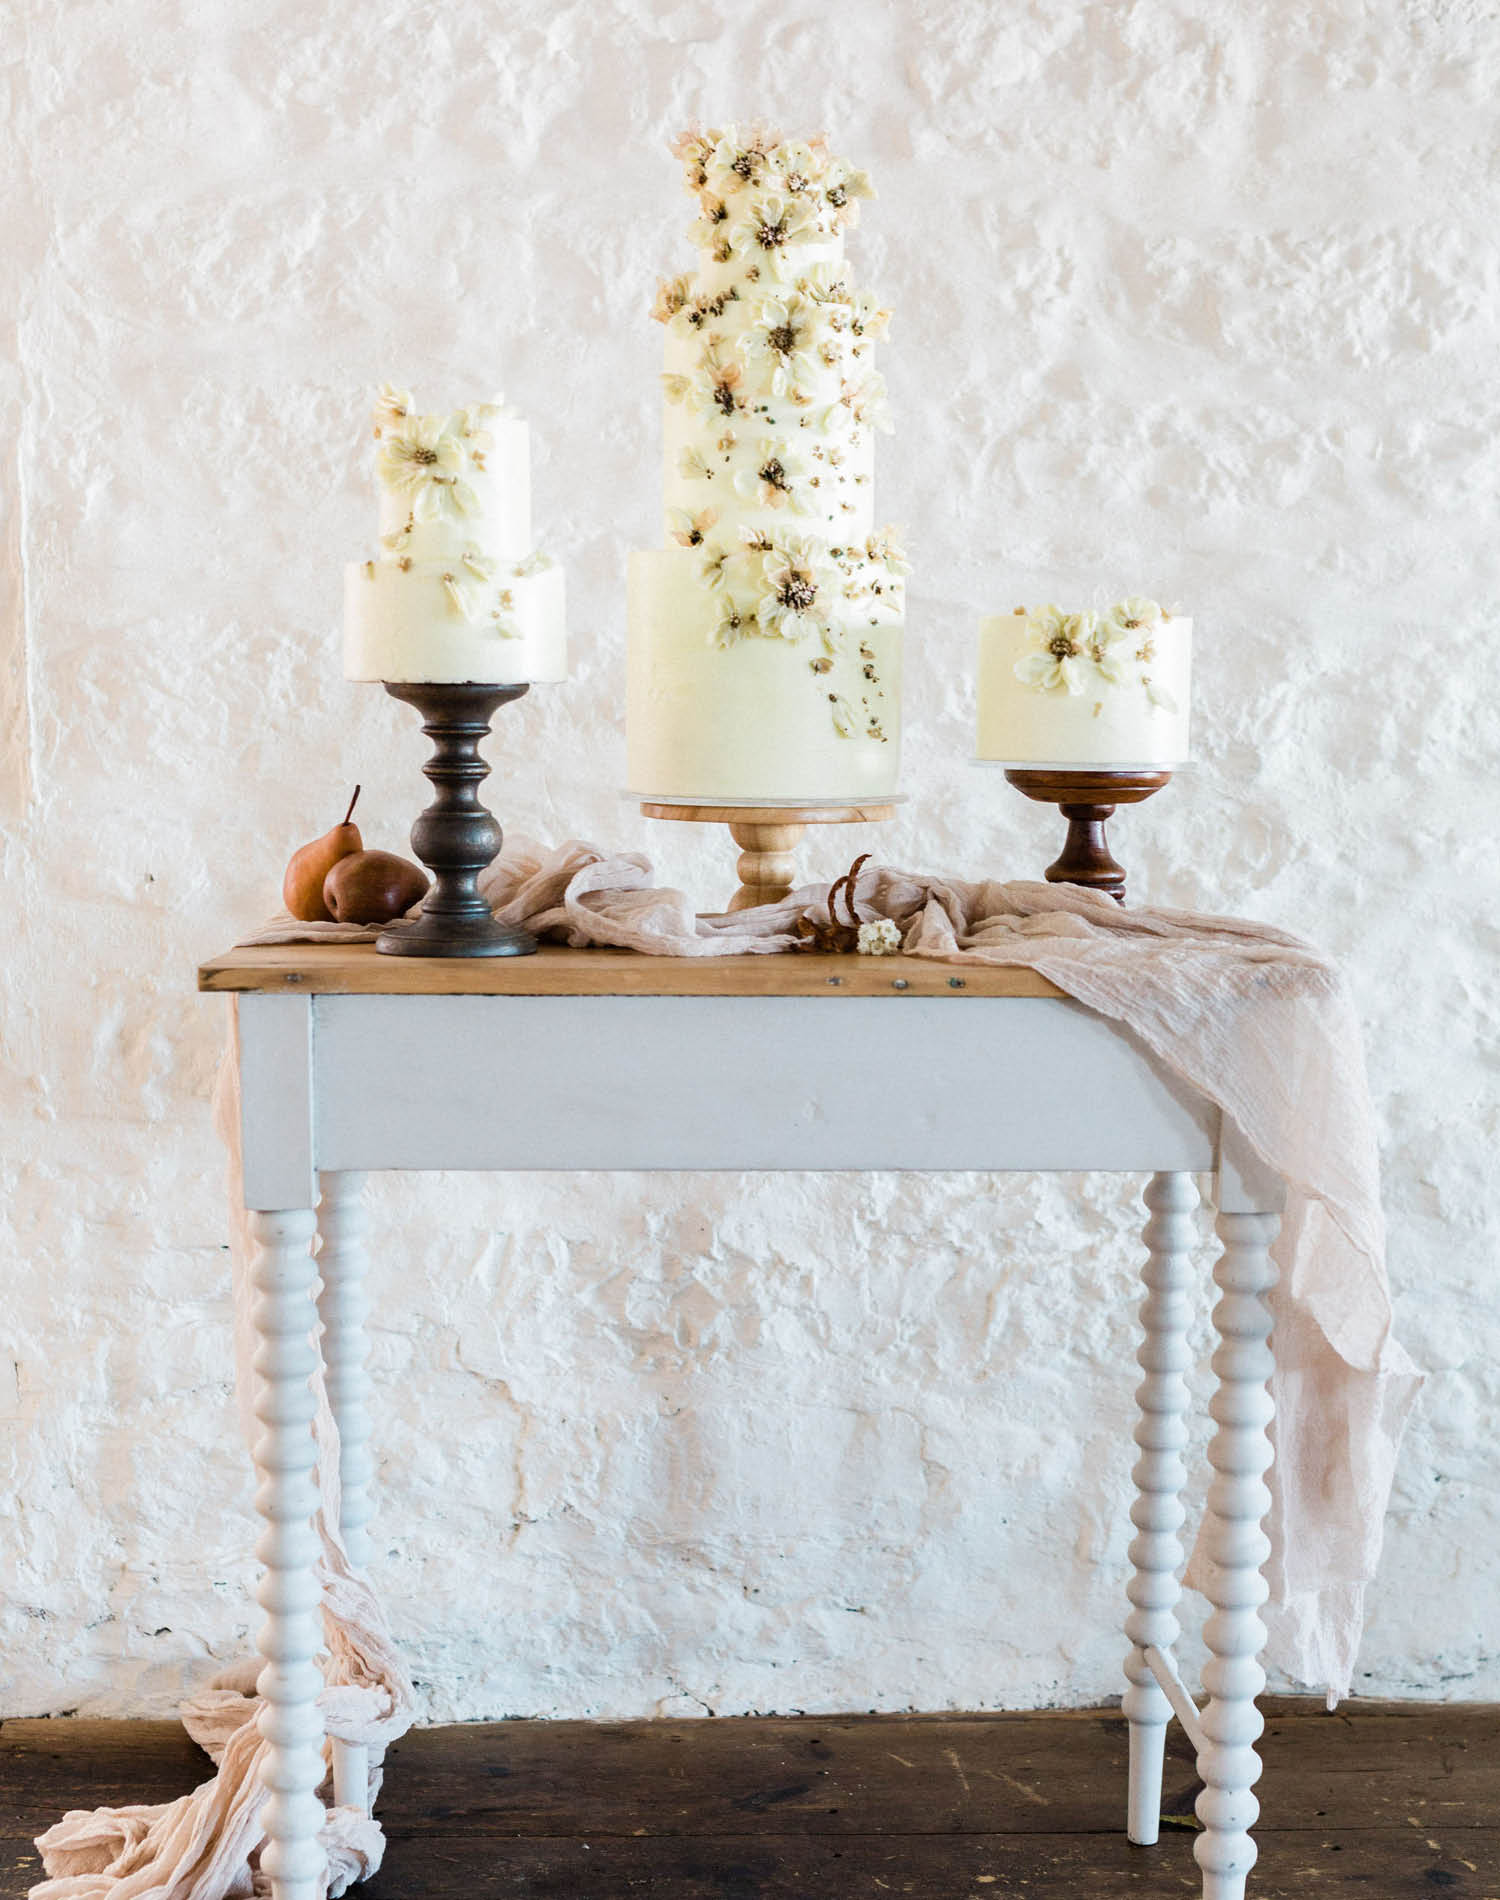 French Farm House Inspired Wedding in Quebec Auberge Saint-Antoine - Wedding Cake by Synthia Irani Design